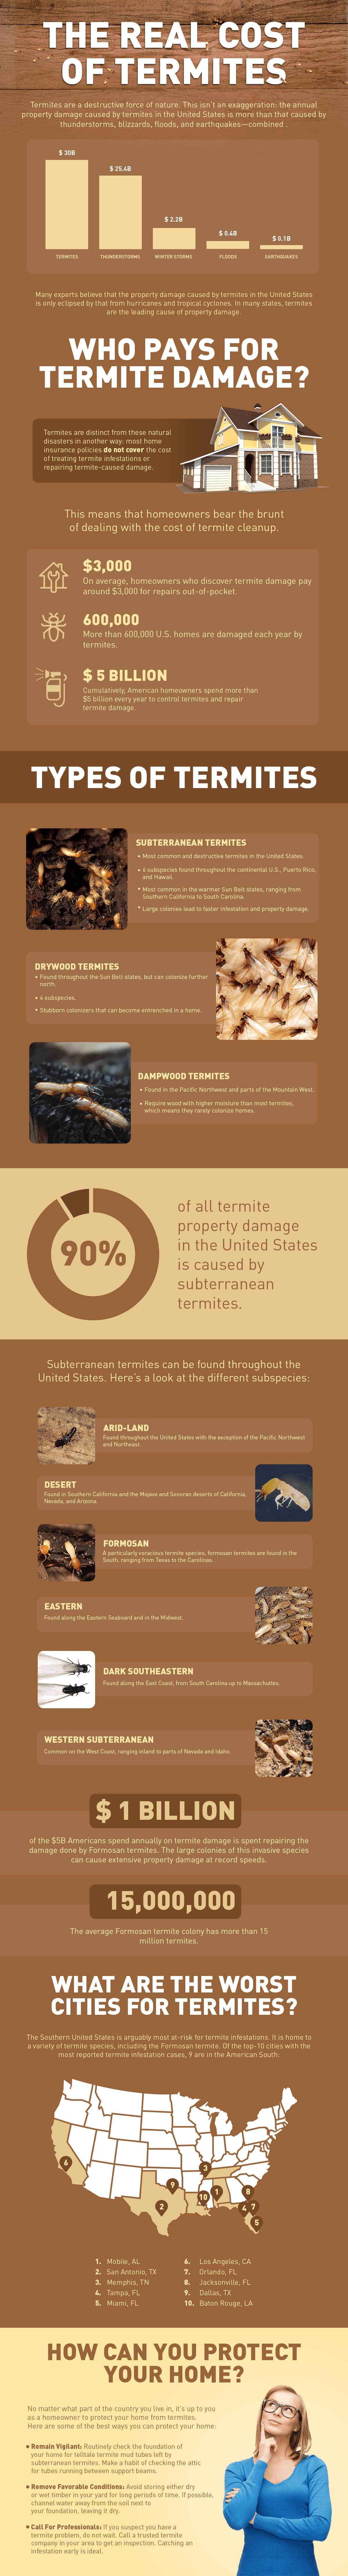 the real cost of termites infographic